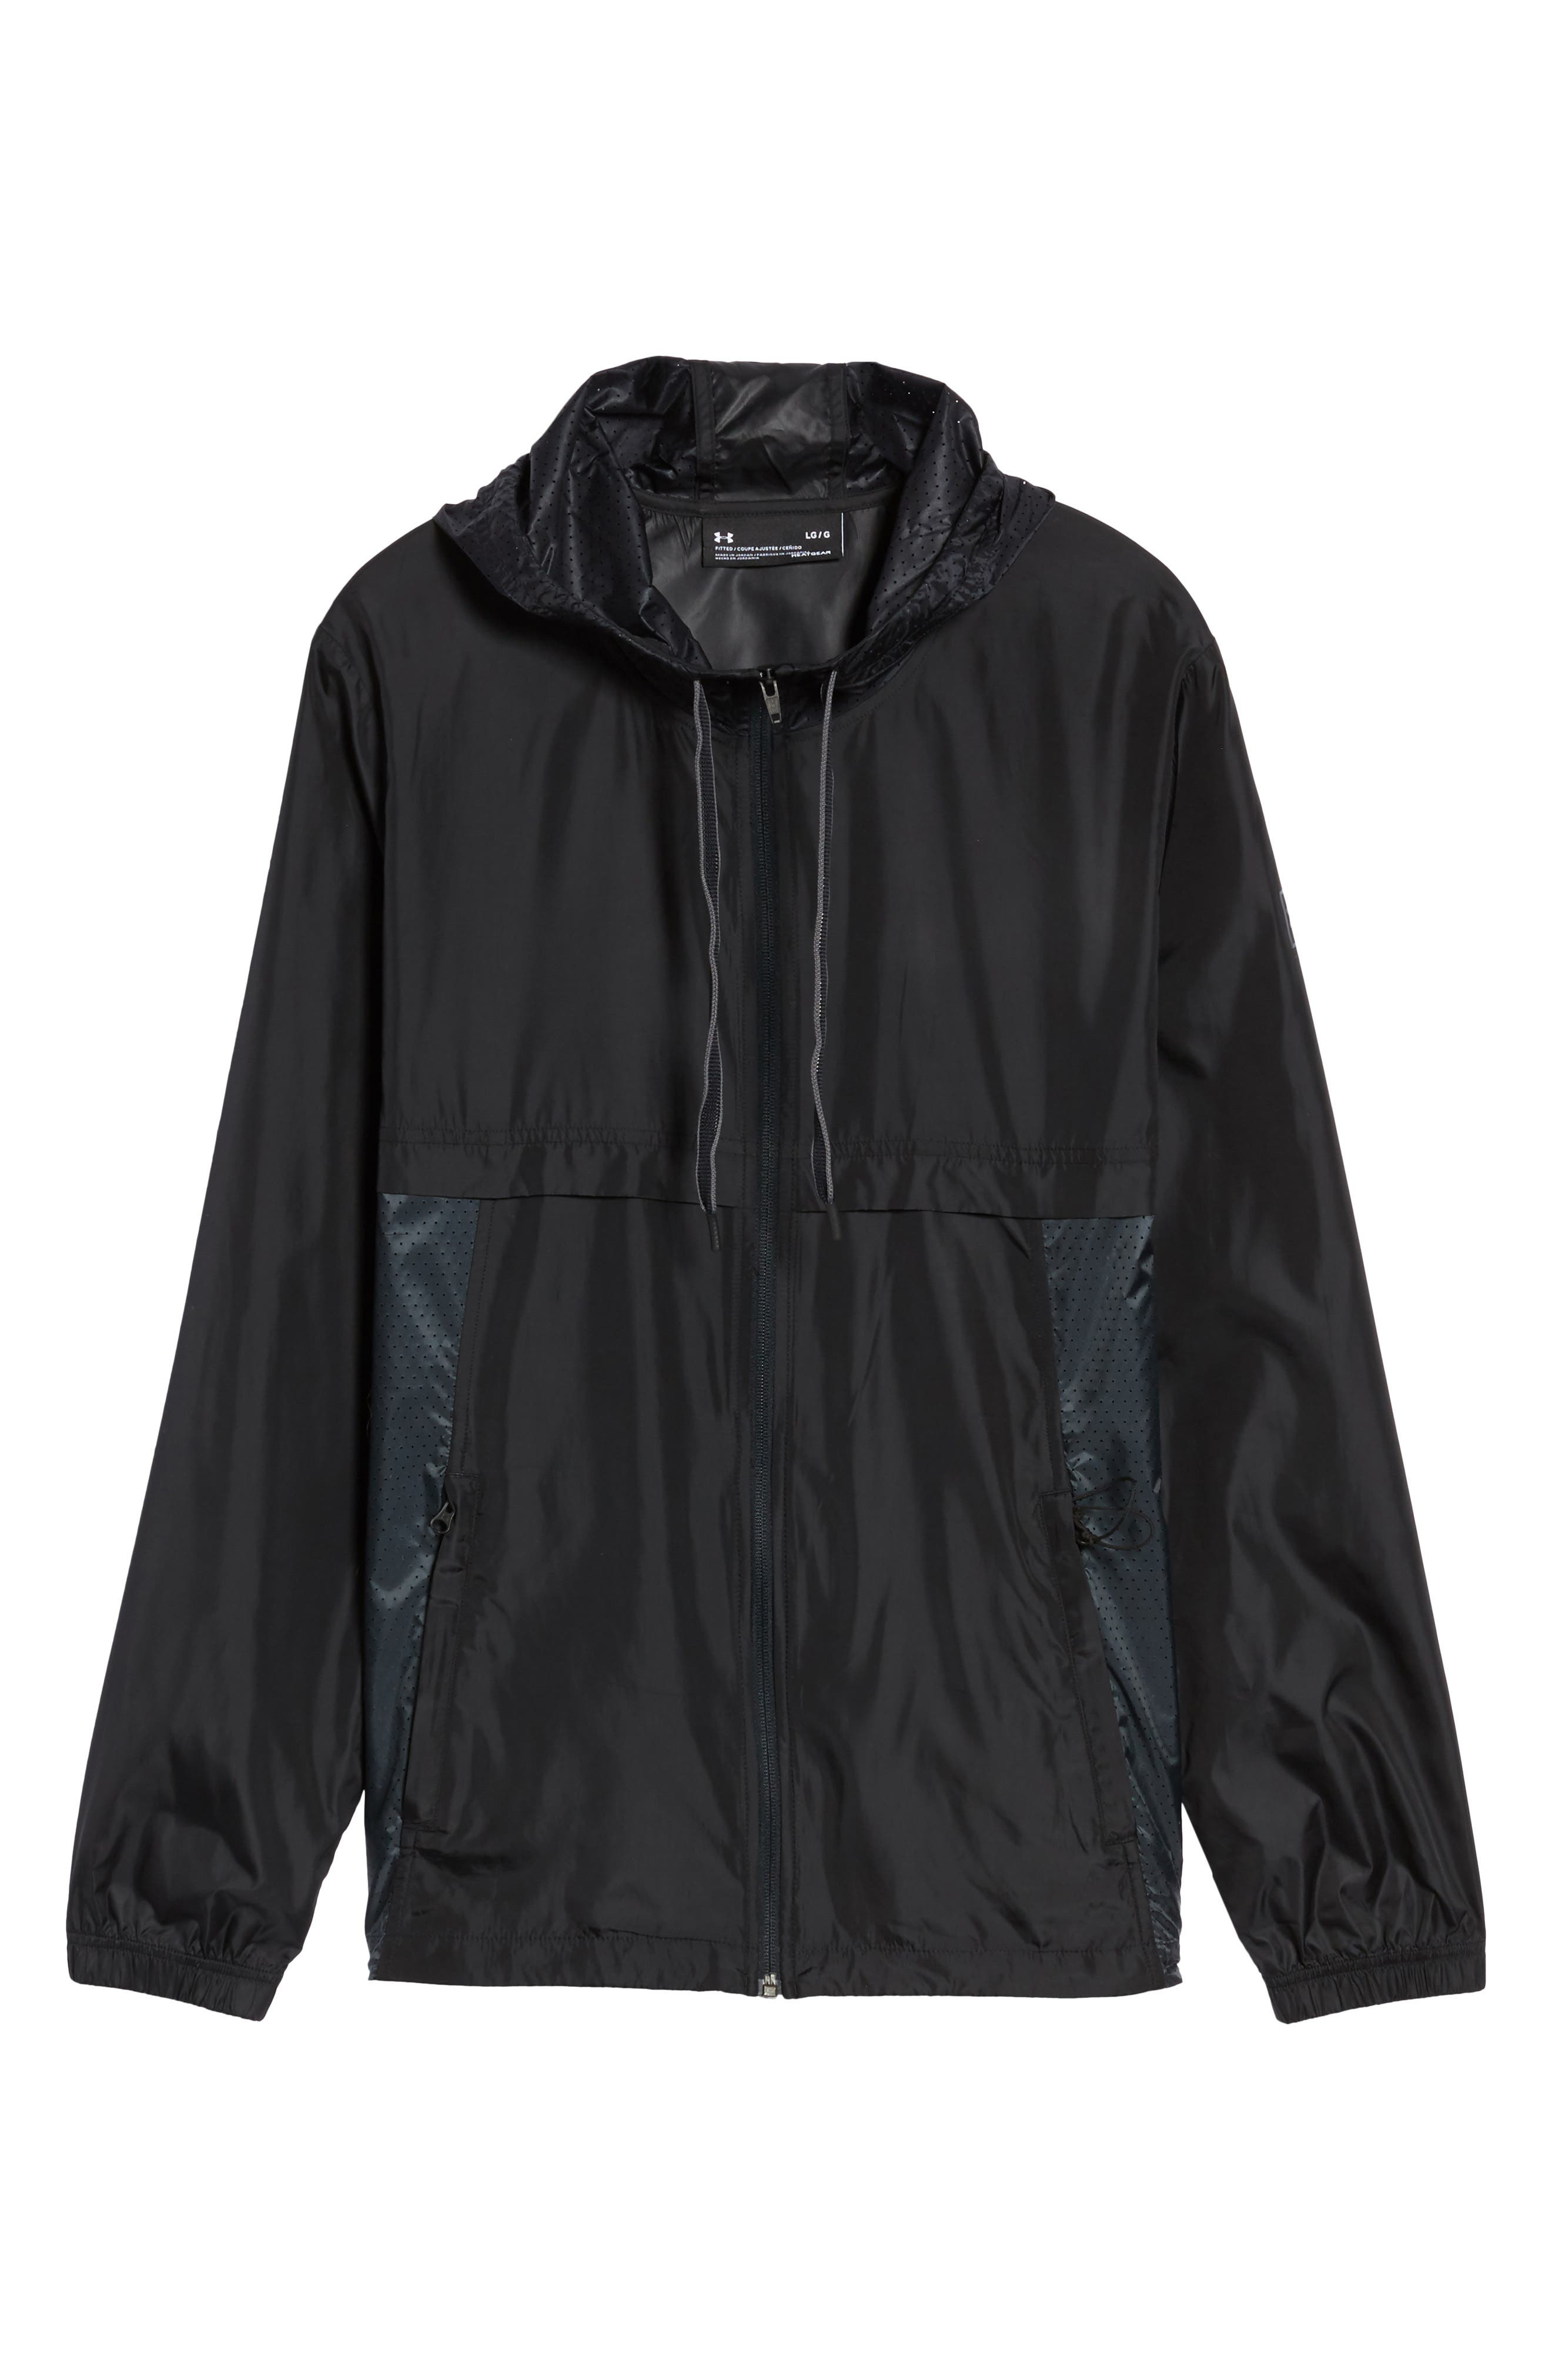 Sportstyle Windbreaker,                             Alternate thumbnail 2, color,                             Black / Overcast Grey